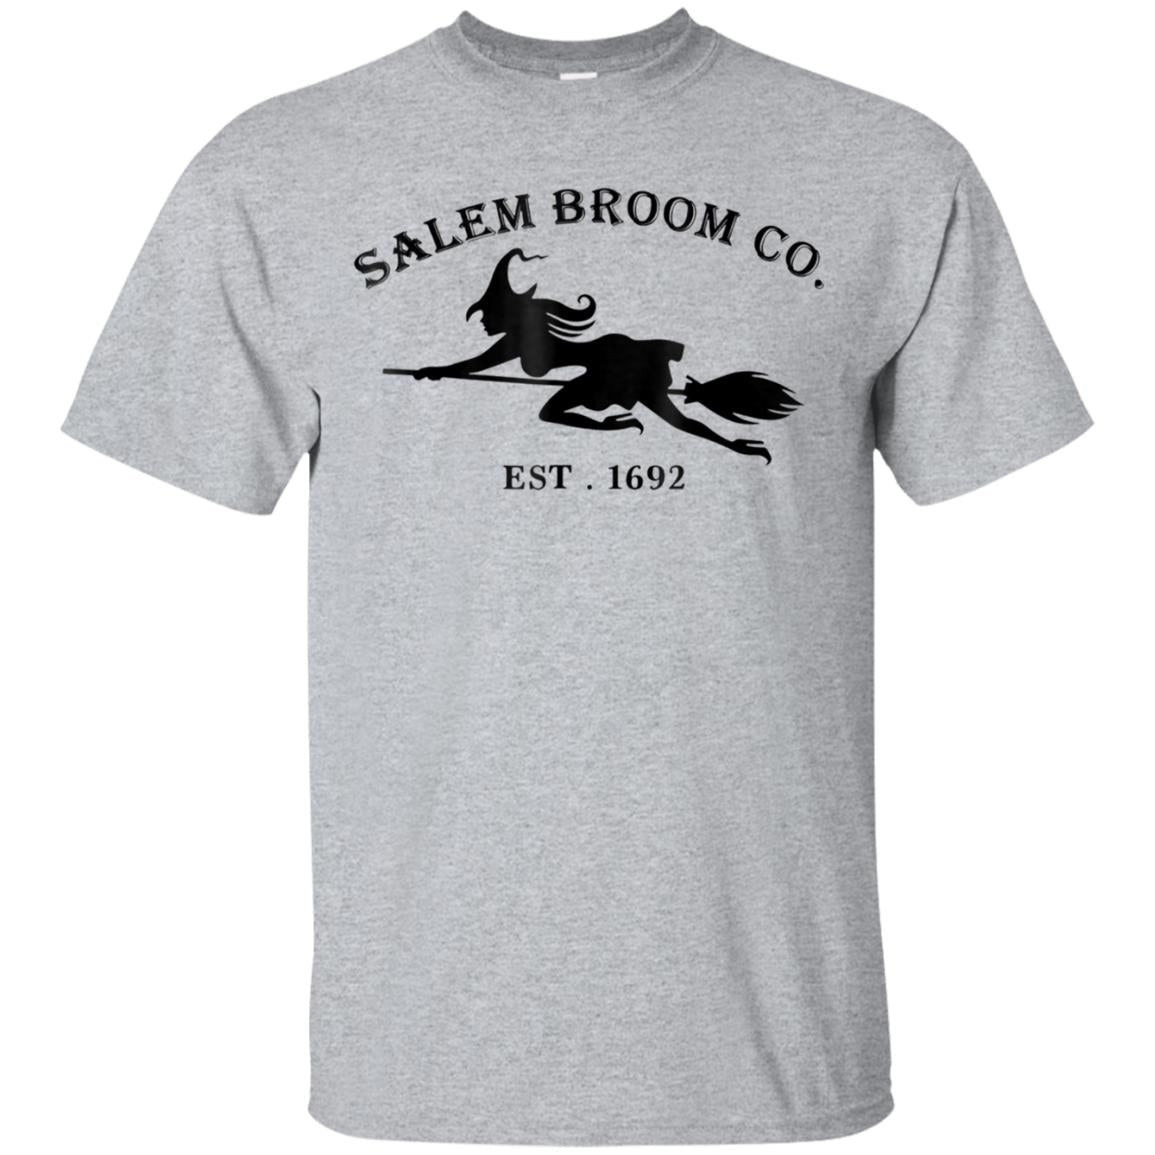 Salem broom co est 1962 T-shirt 99promocode